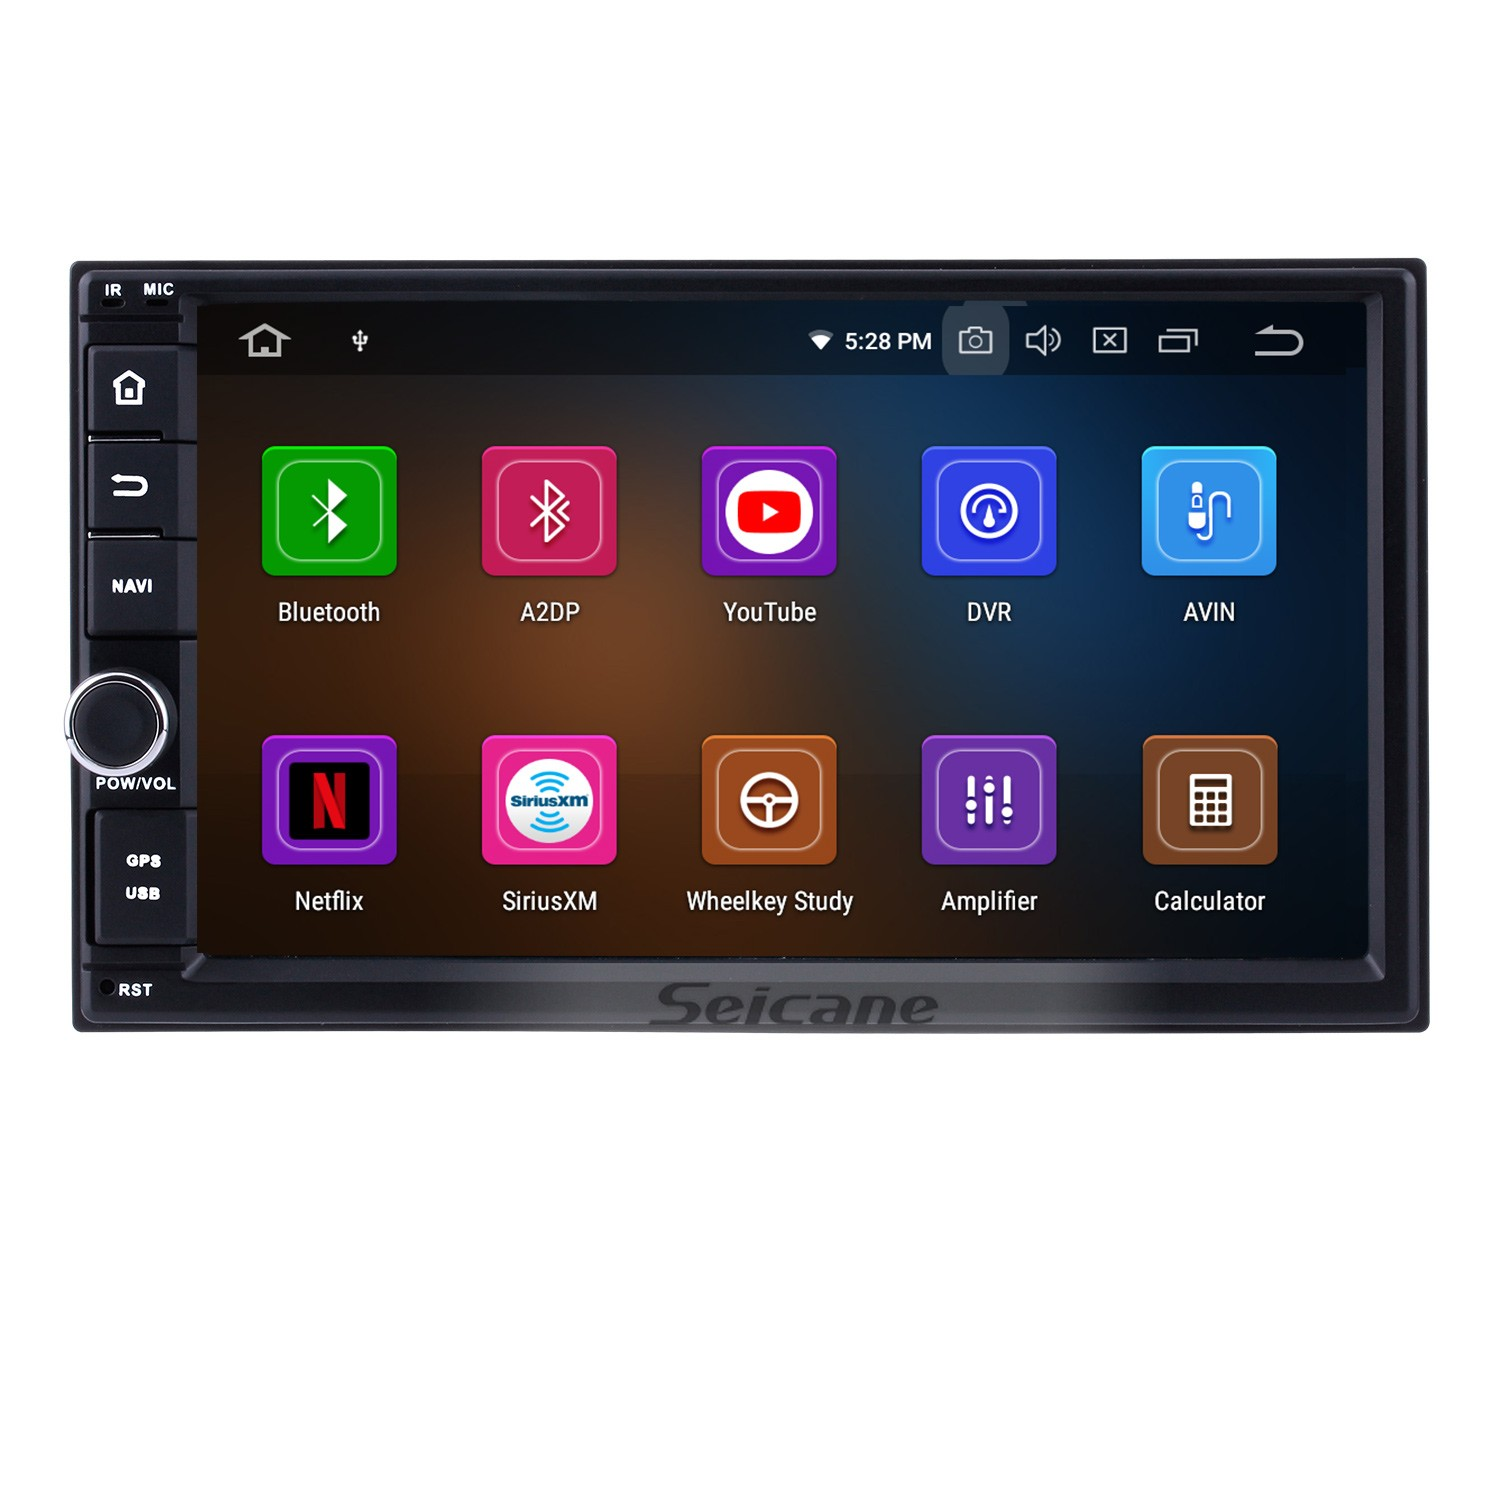 2Din Car Stereo GPS Navigation in Dash Android 10.0 7inch Car Touchscreen Radio Bluetooth Hands-Free Support 1080P Video USB SD Steering Wheel Control 3G 4G WiFi FM AM RDS Screen Mirror DVR OBD2 DAB